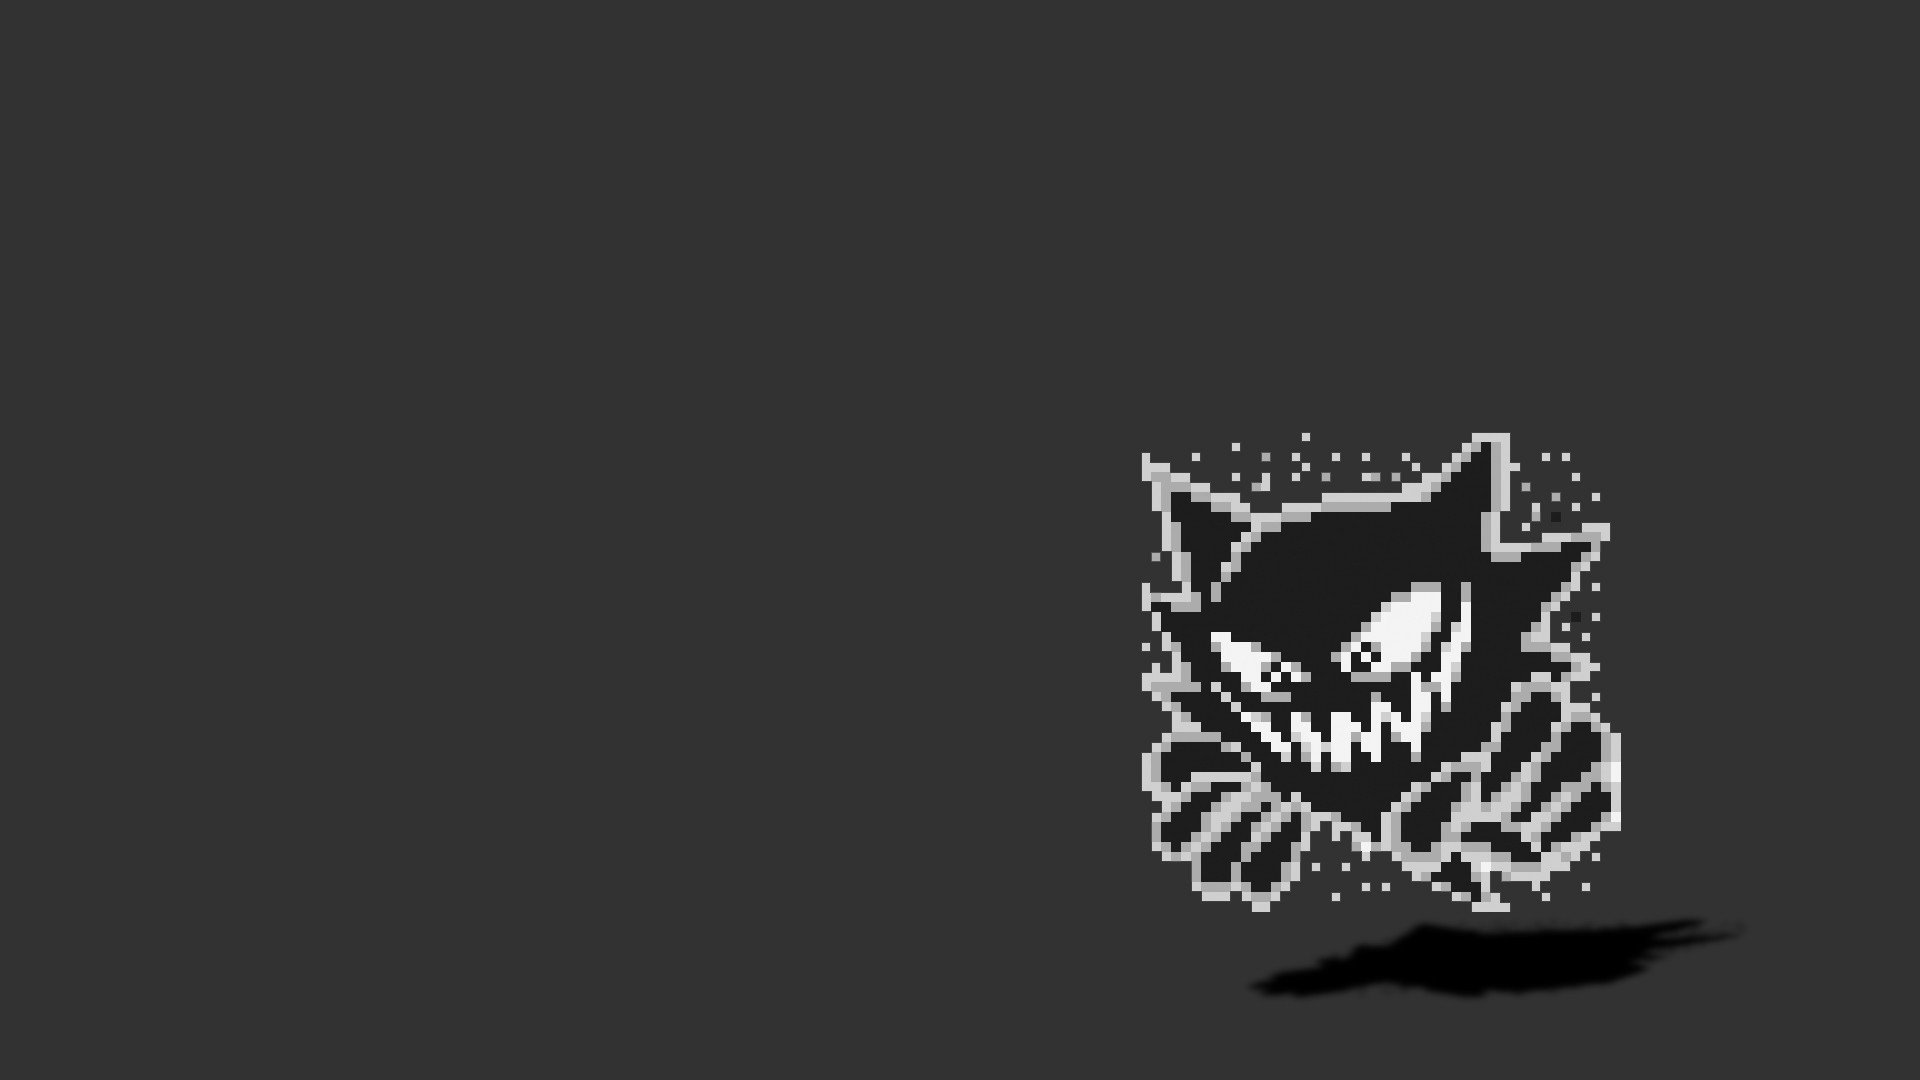 Best Haunter (Pokemon) wallpaper ID:280822 for High Resolution full hd 1920x1080 desktop